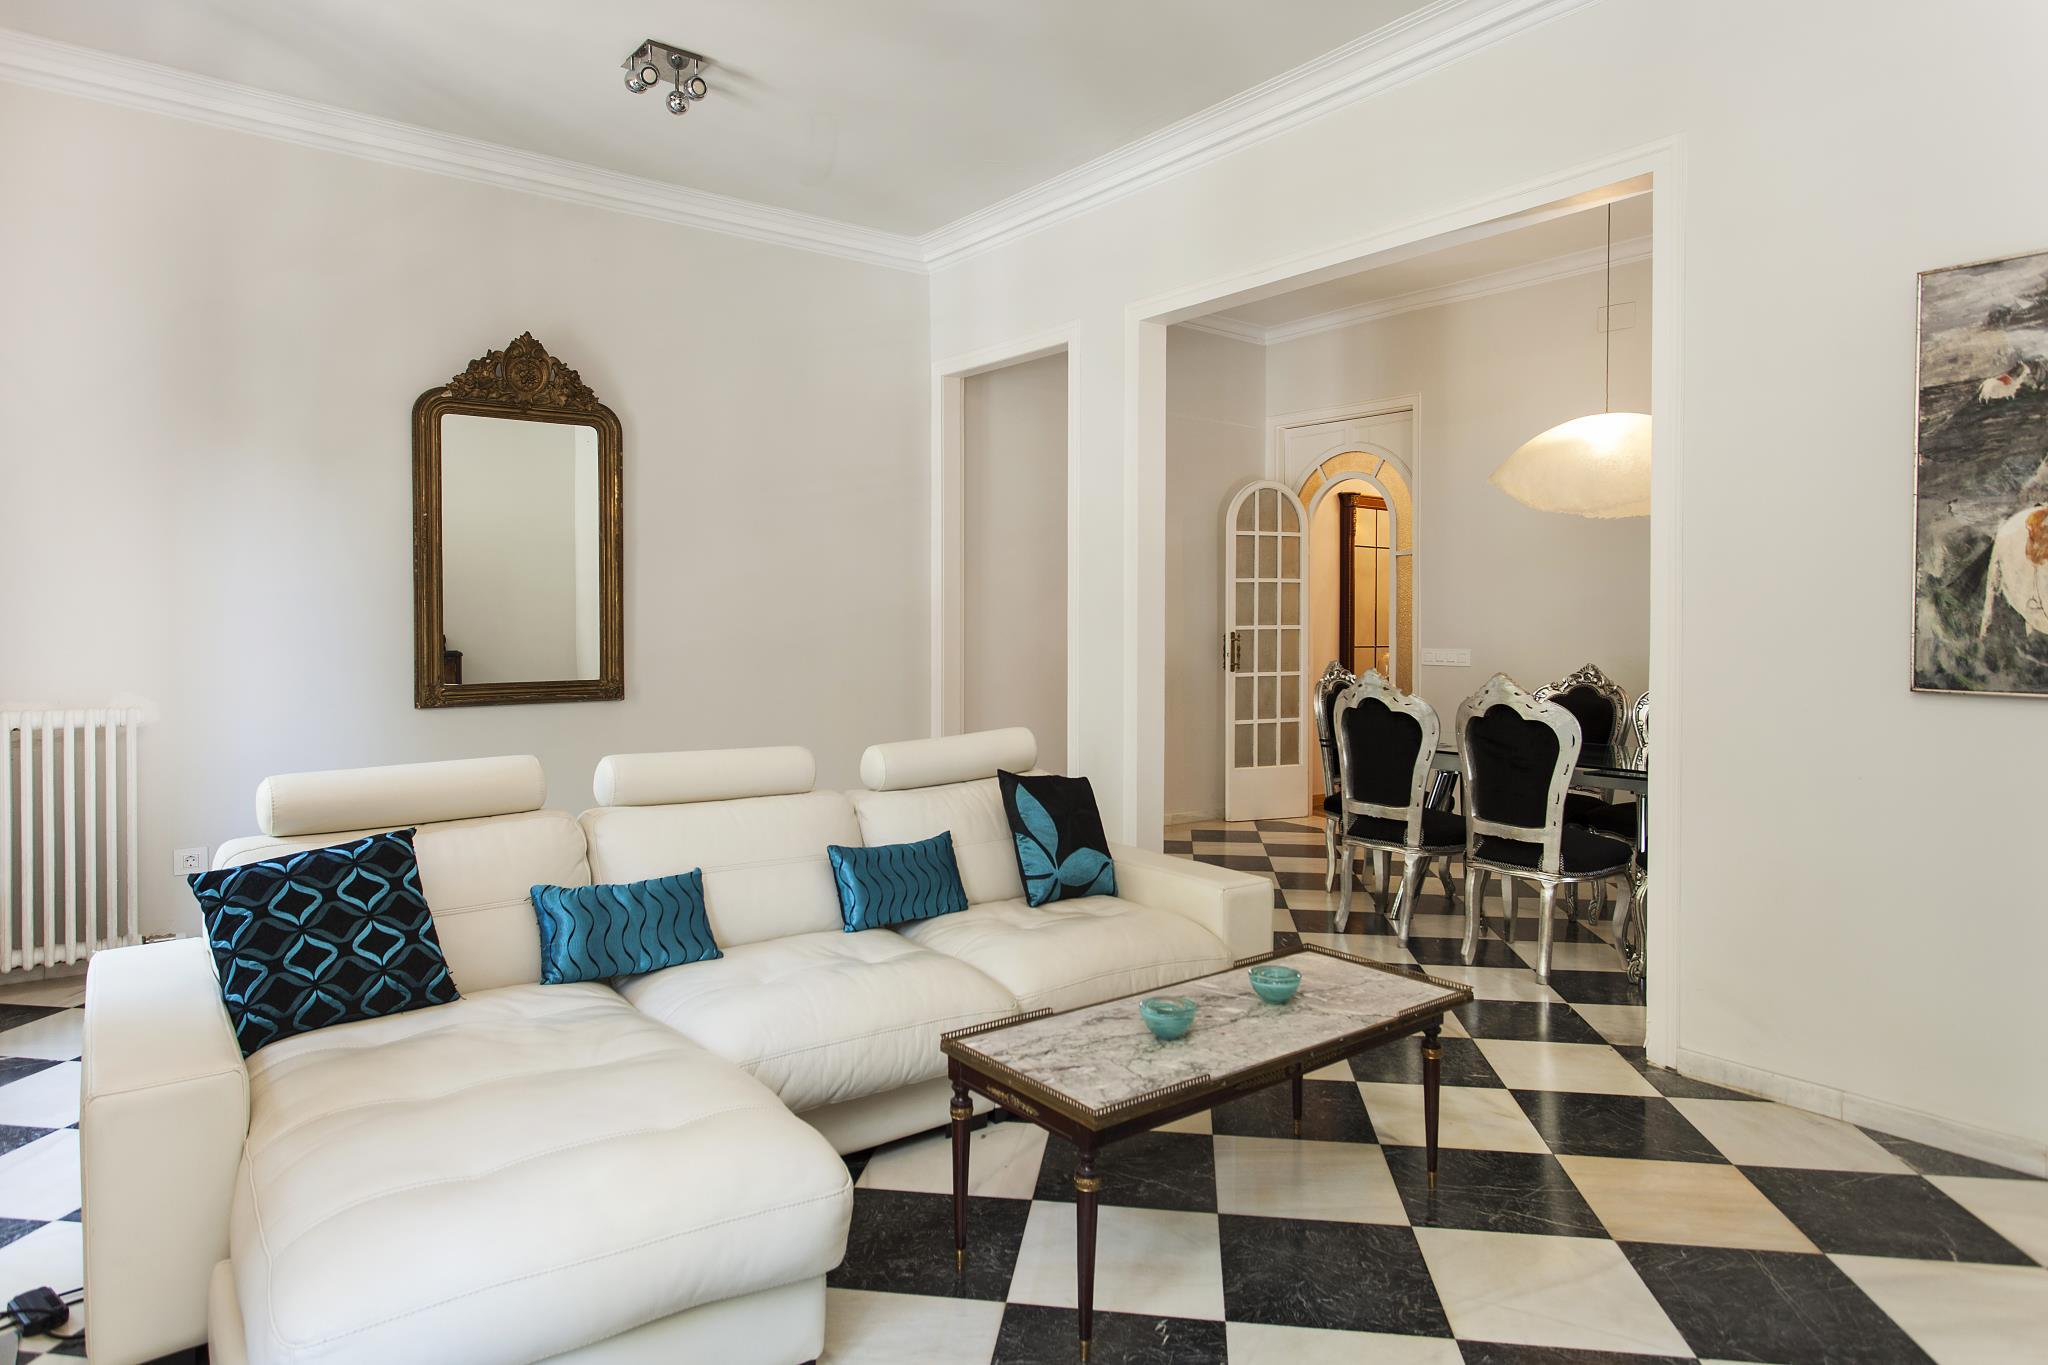 1229   Awesome City Center Apartment With Terrace